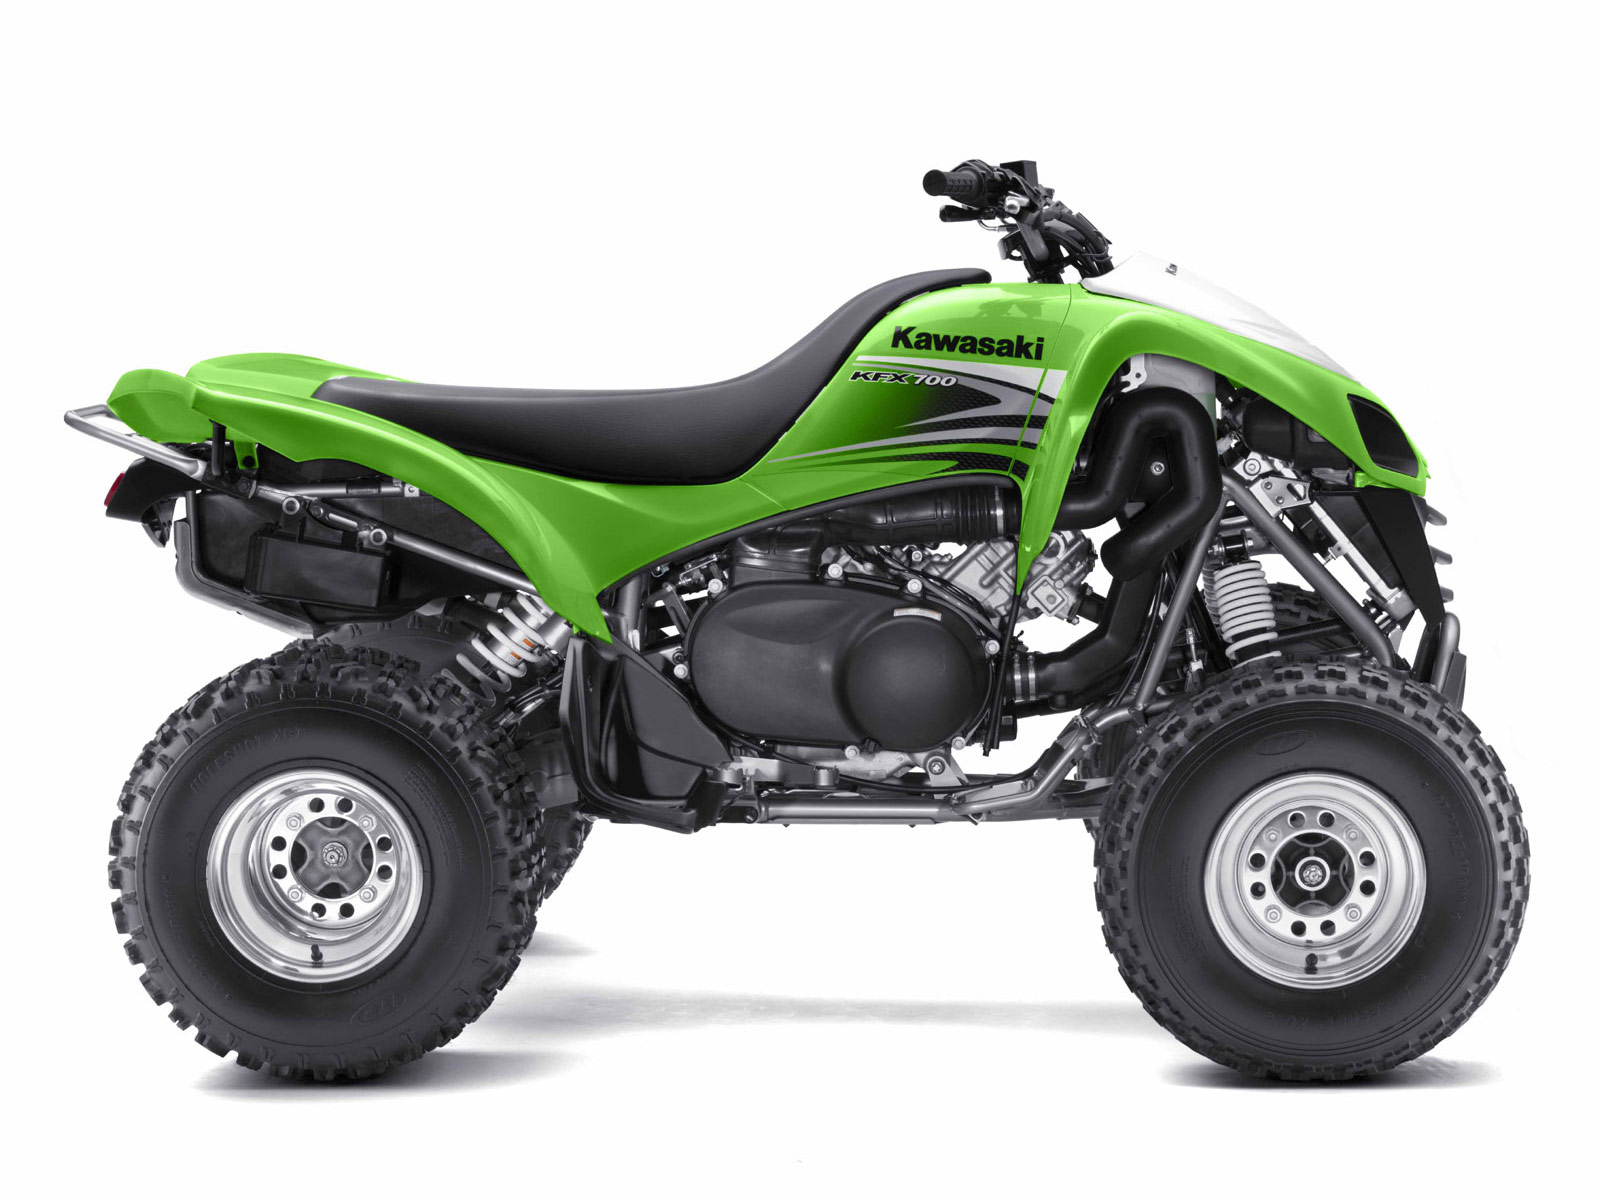 2009 kawasaki kfx700 atv accident lawyers info wallpaper. Black Bedroom Furniture Sets. Home Design Ideas